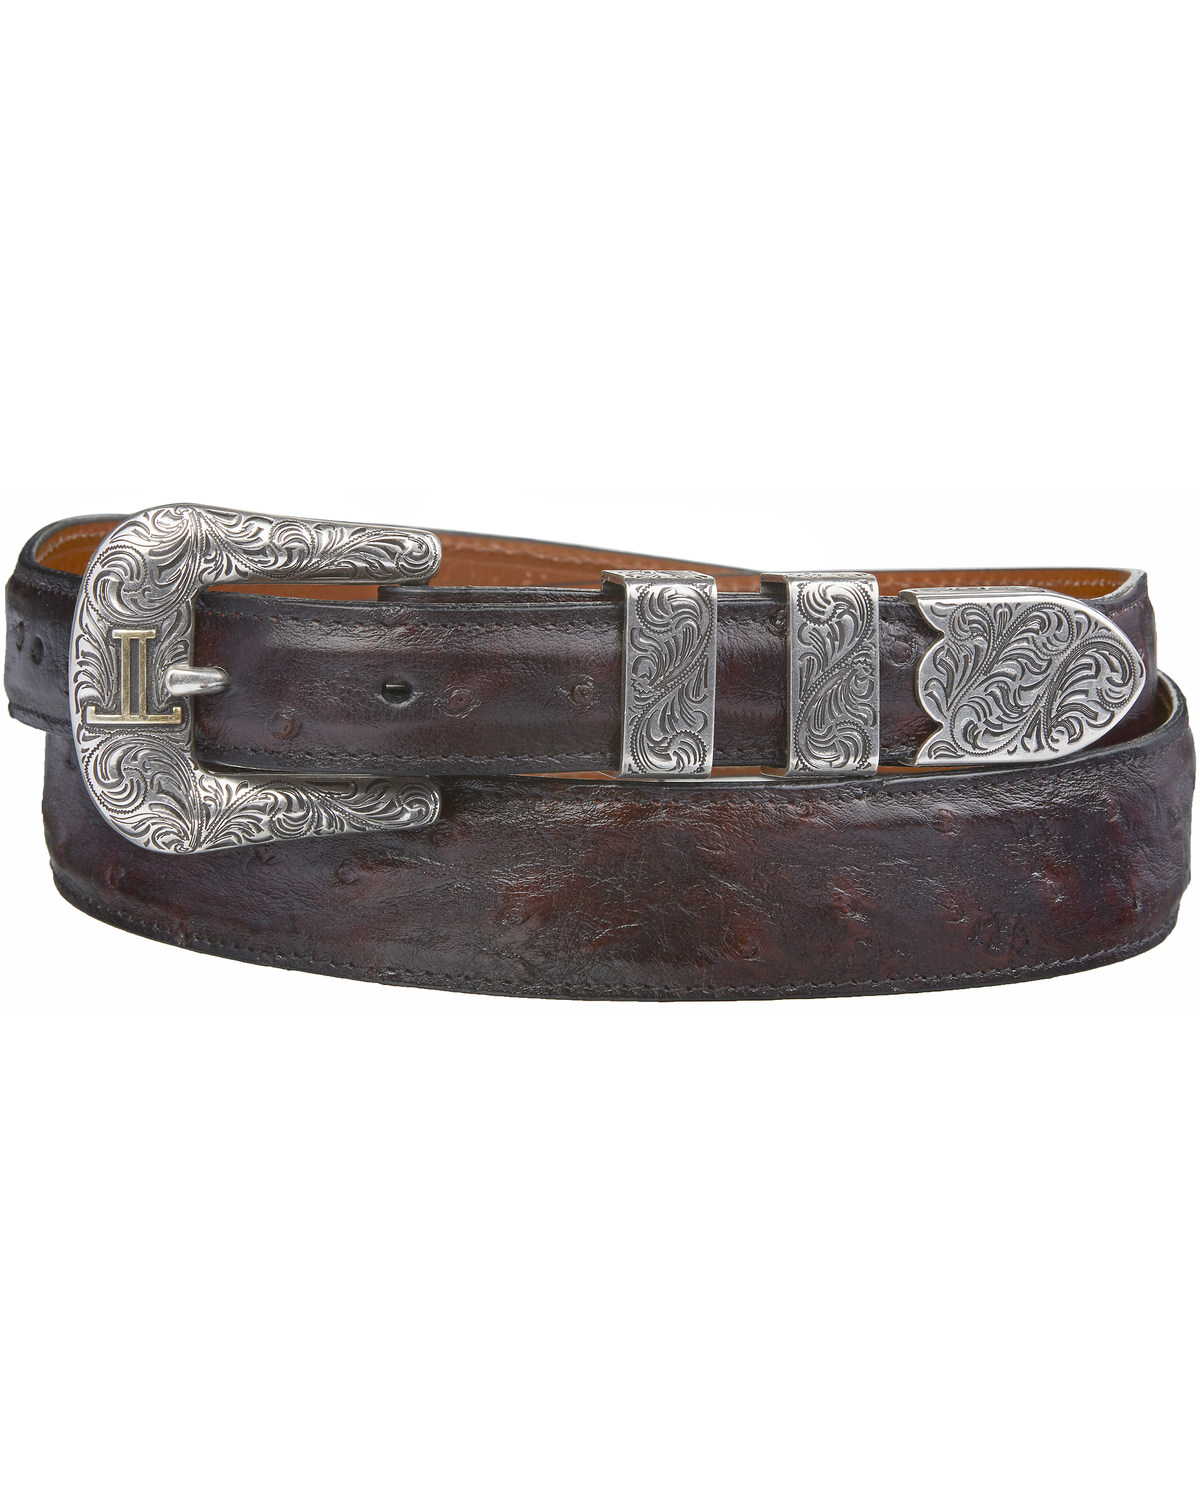 748a2ae08aa3 Lucchese Men s Black Cherry Full Quill Ostrich Leather Belt